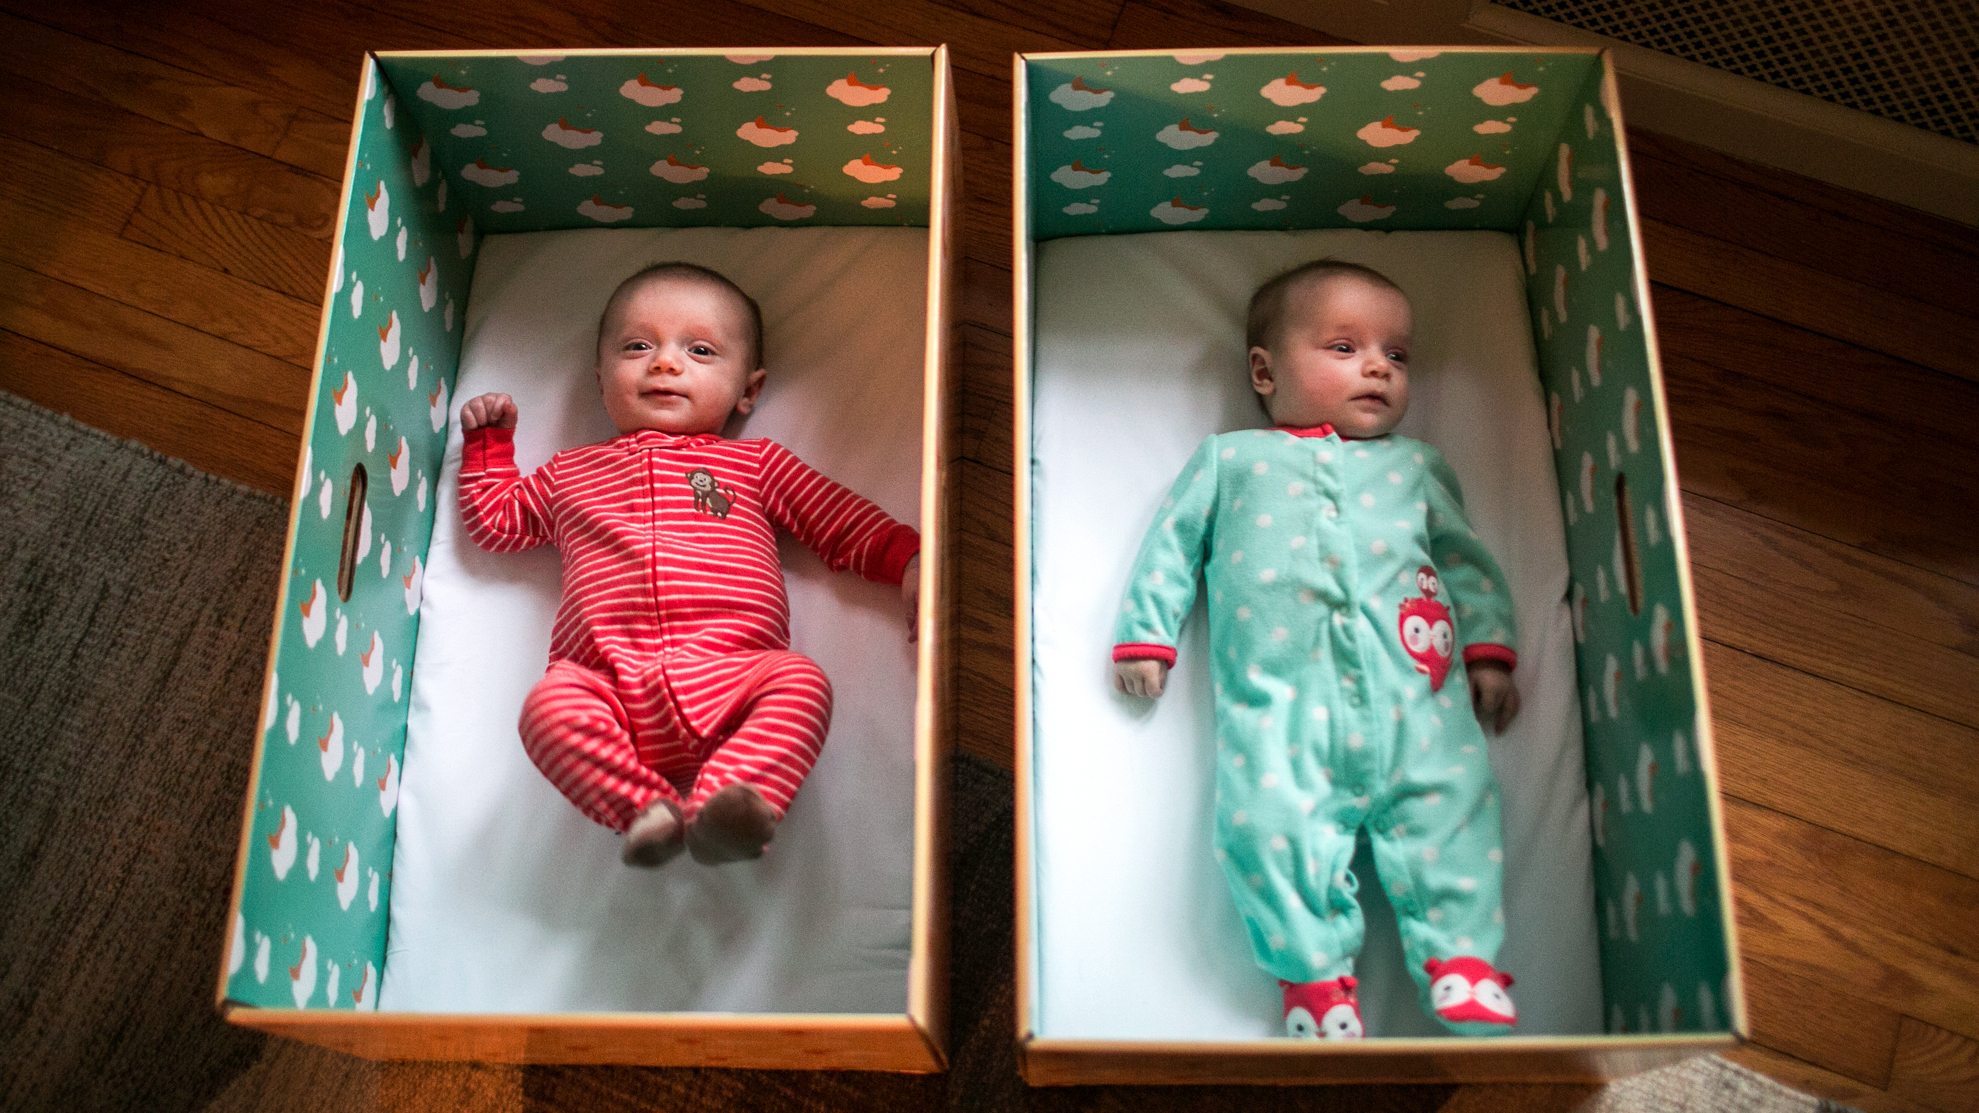 Baby-box: Mom, give me a chance to survive